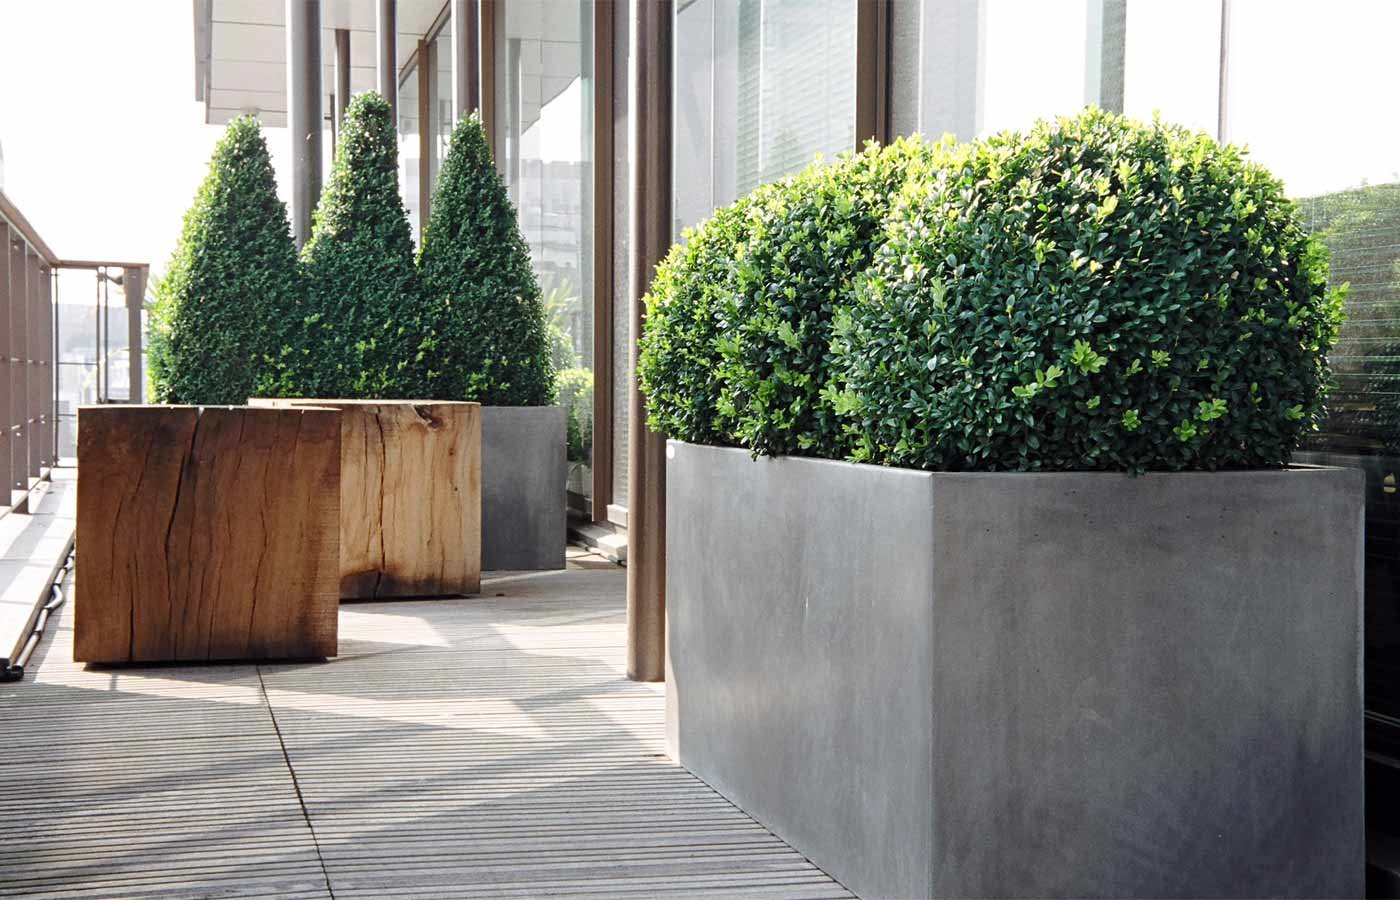 Clipped box shapes in planters on roof terrace